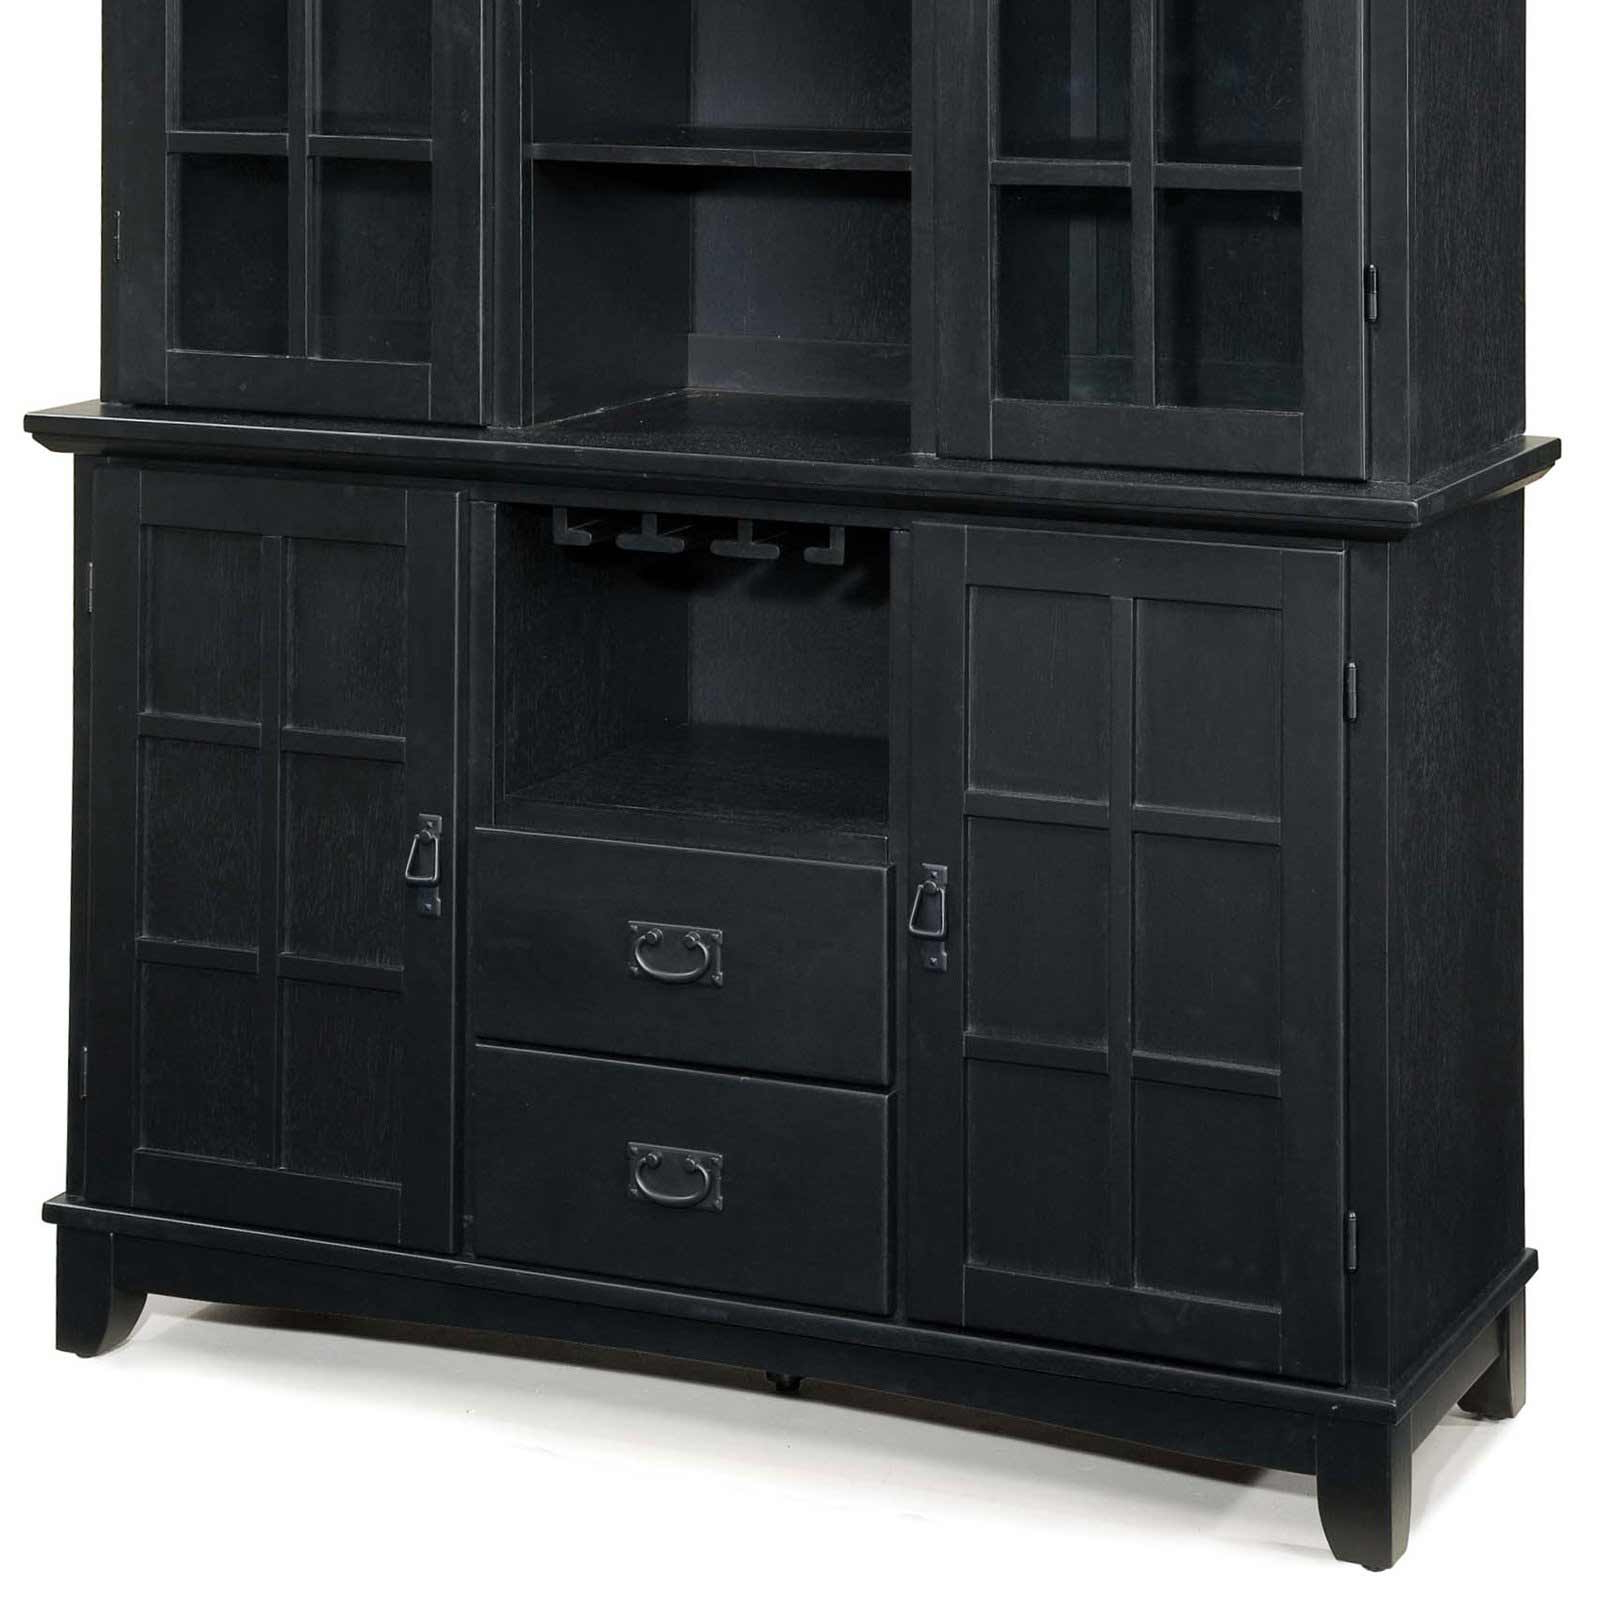 Home Styles Buffet To Beautify Kitchen Pacific Seafood Within Black Hutch Buffets With Stainless Top (View 8 of 20)